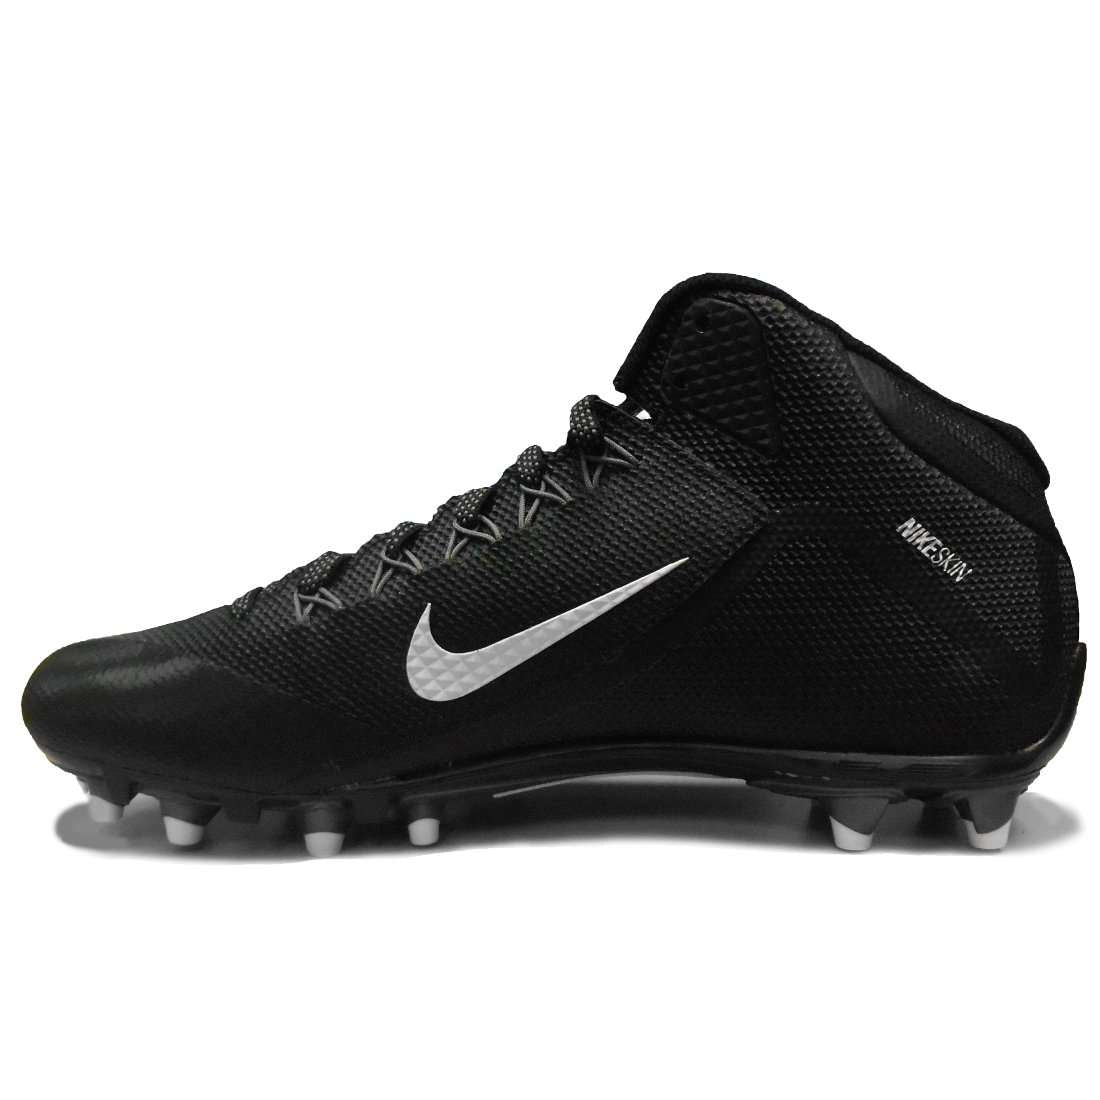 buy popular f70d4 3b823 ... Nike Alpha Pro 2 3 4 TD Football Cleats - League Outfitters ...